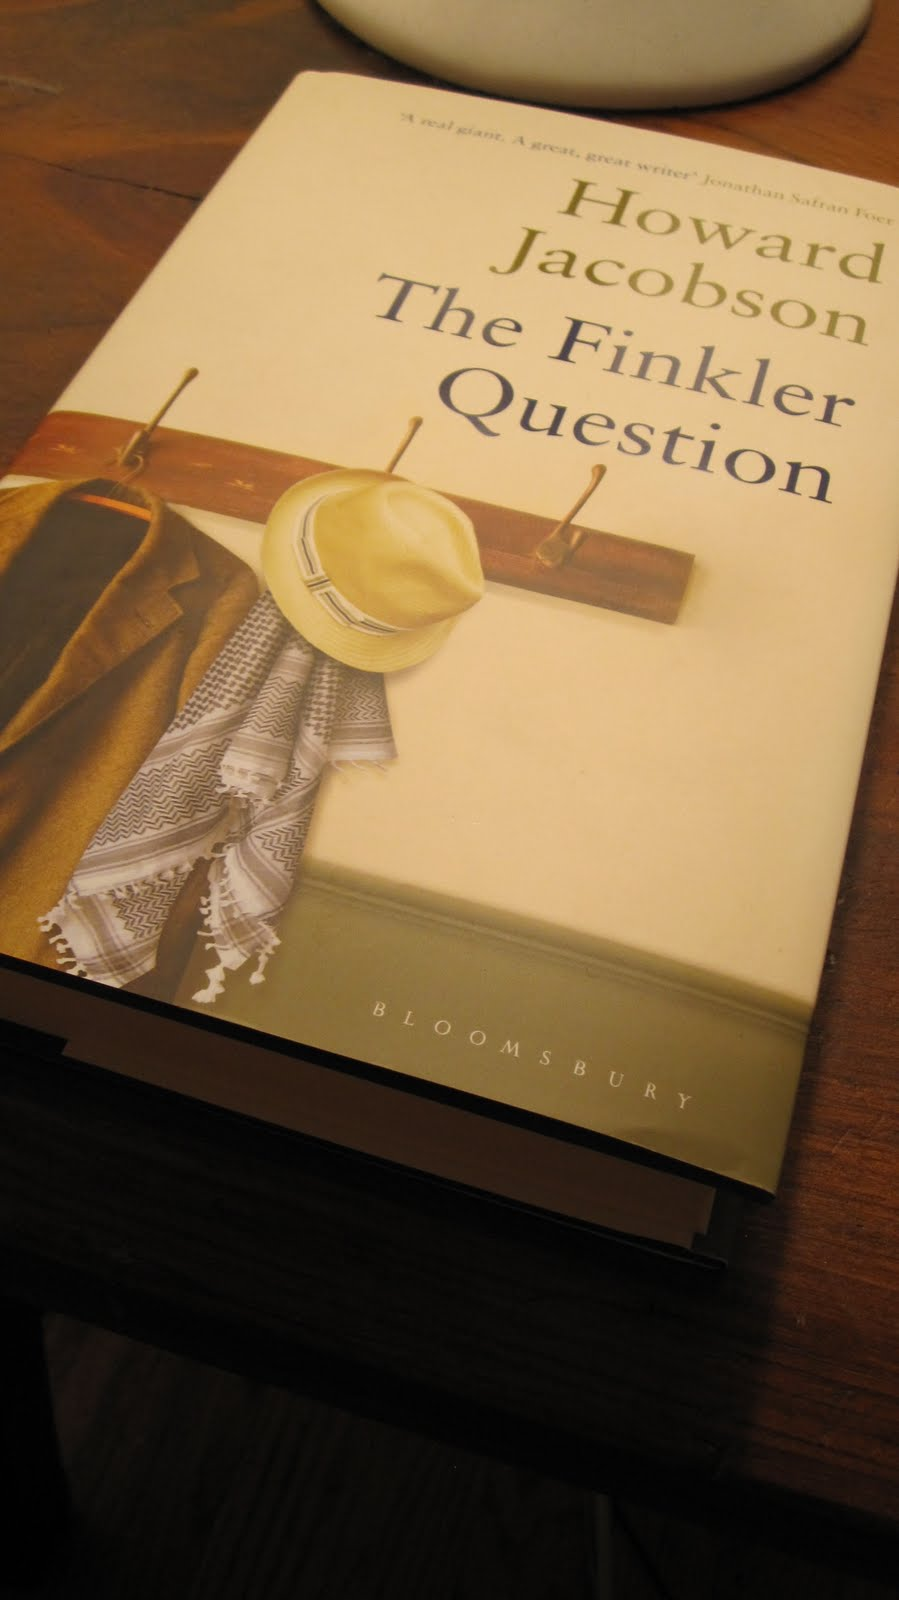 Congratulations To Howard Jacobson For Winning The 2010 Man Booker Prize  For His Novel The Finkler Question! I Haven't Read It Yet, But I'm Very  Much